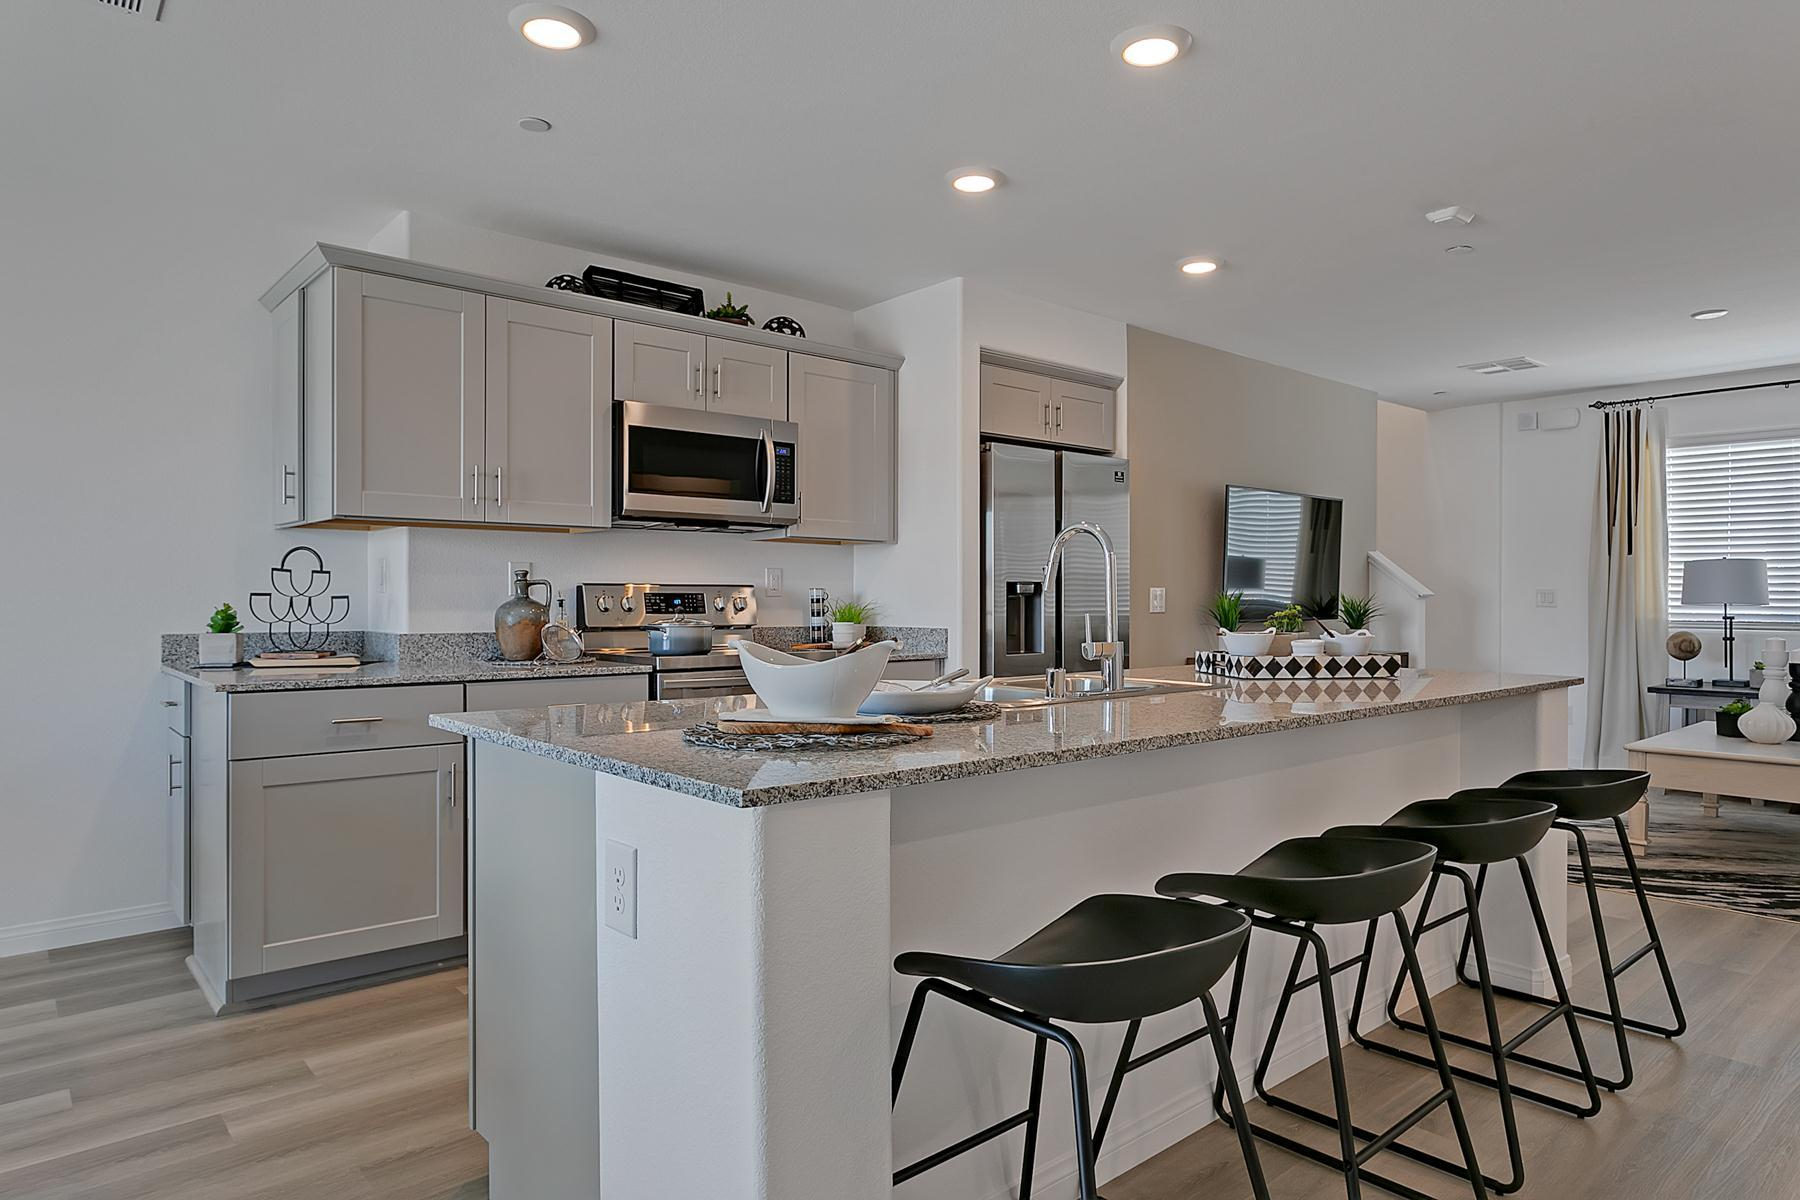 Kitchen featured in the Quartz Plan 330 By Touchstone Living in Las Vegas, NV